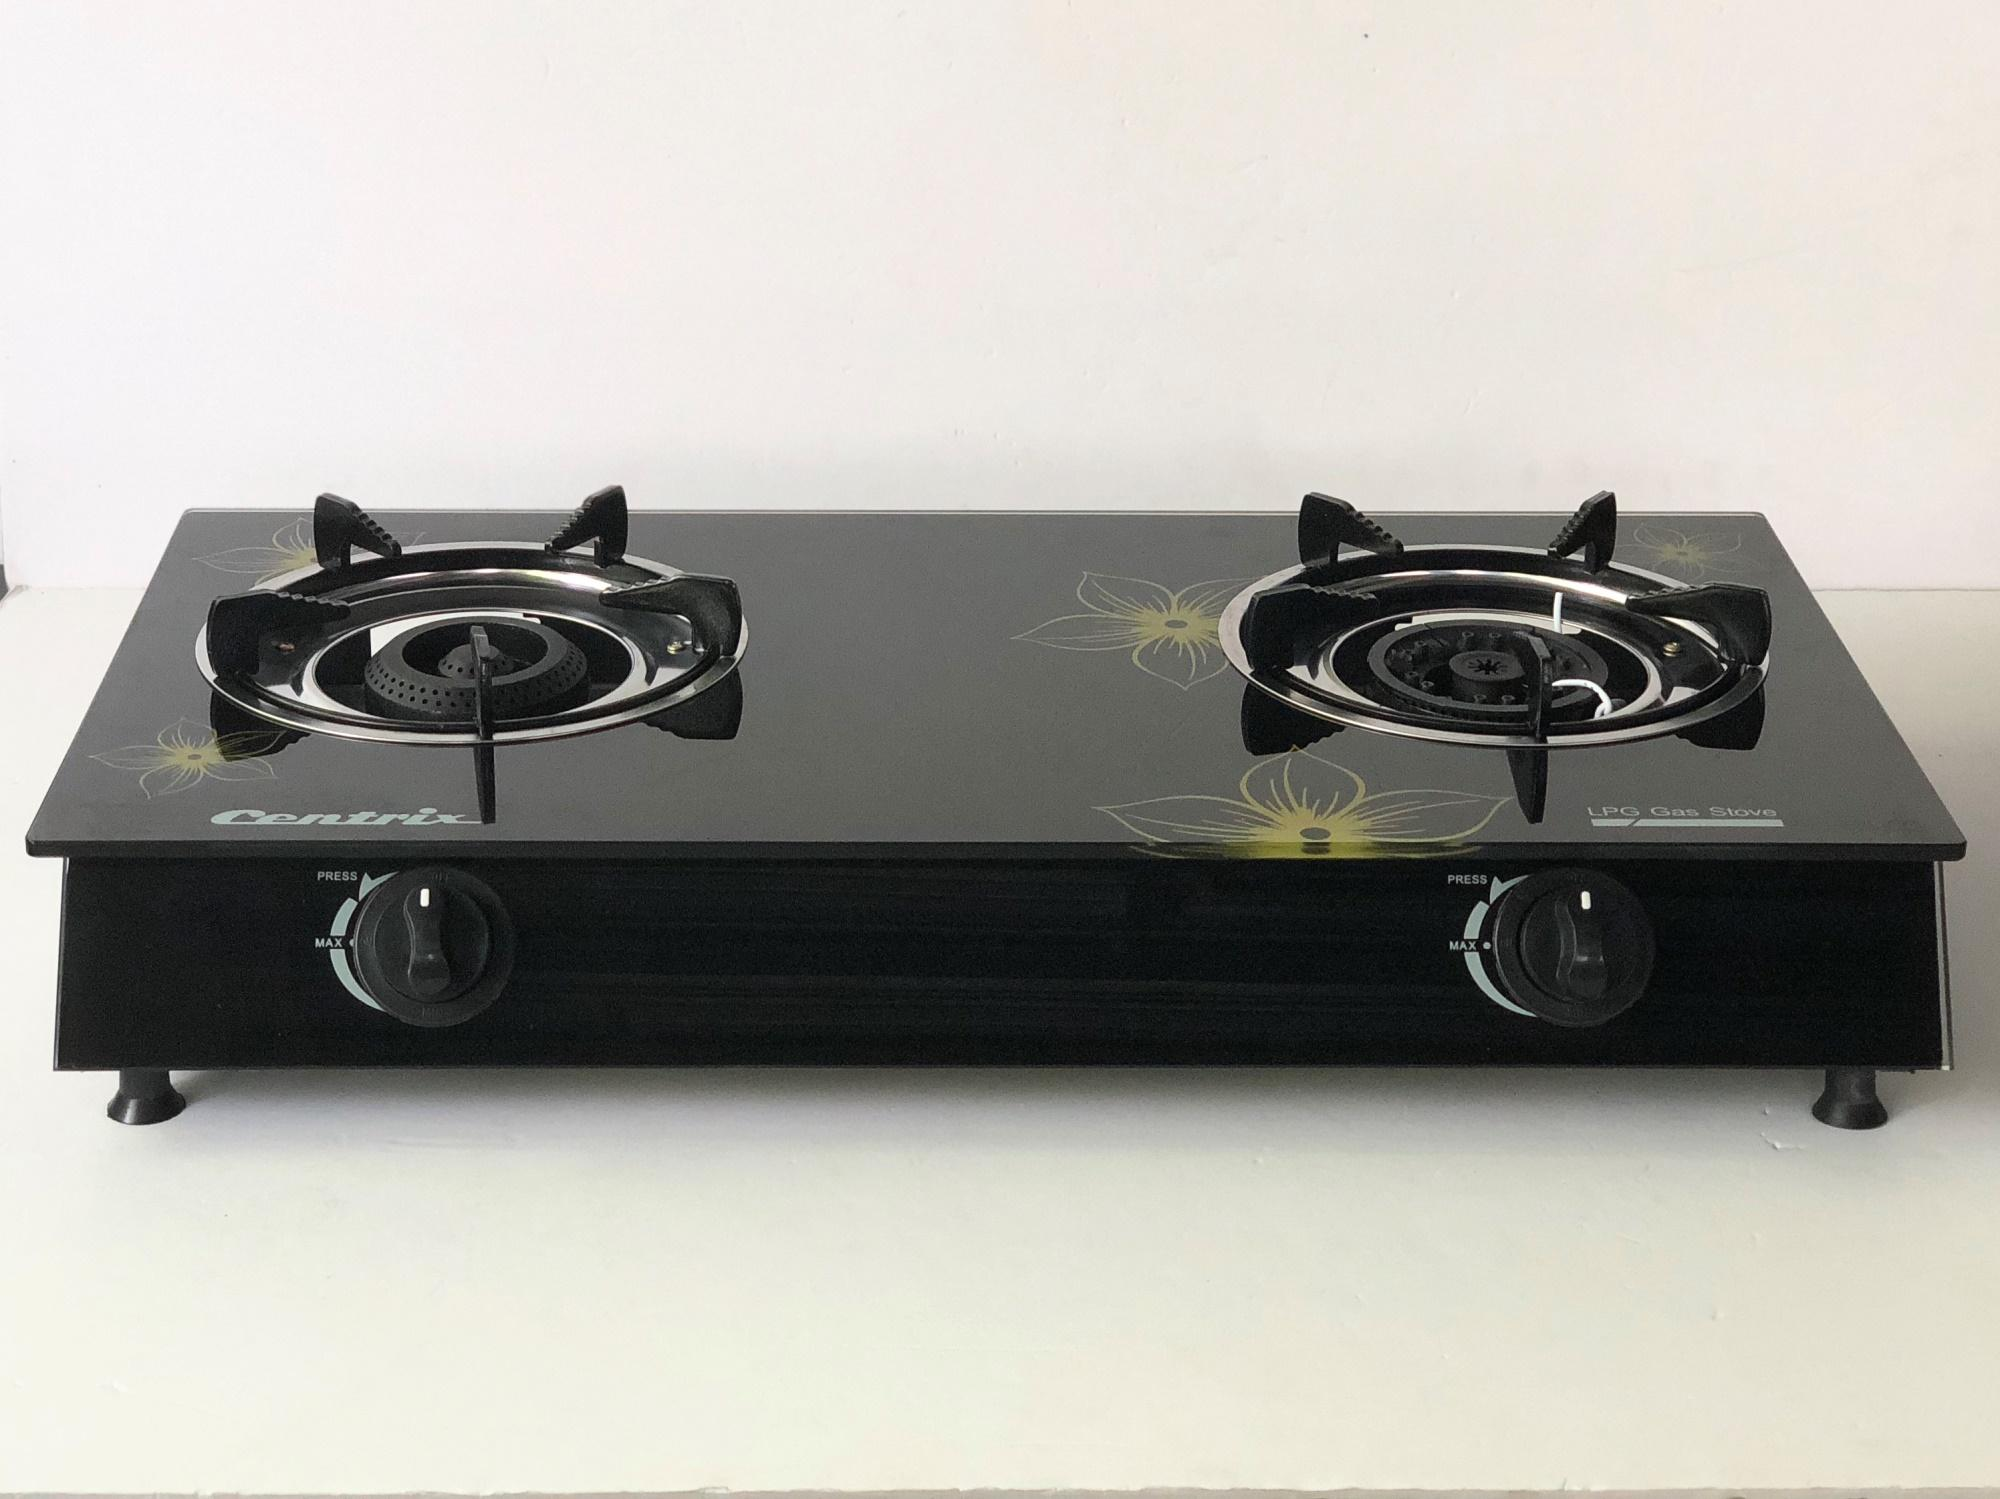 kitchen stove gas bar with stools for sale prices brands review in philippines double burner glass cx 212g